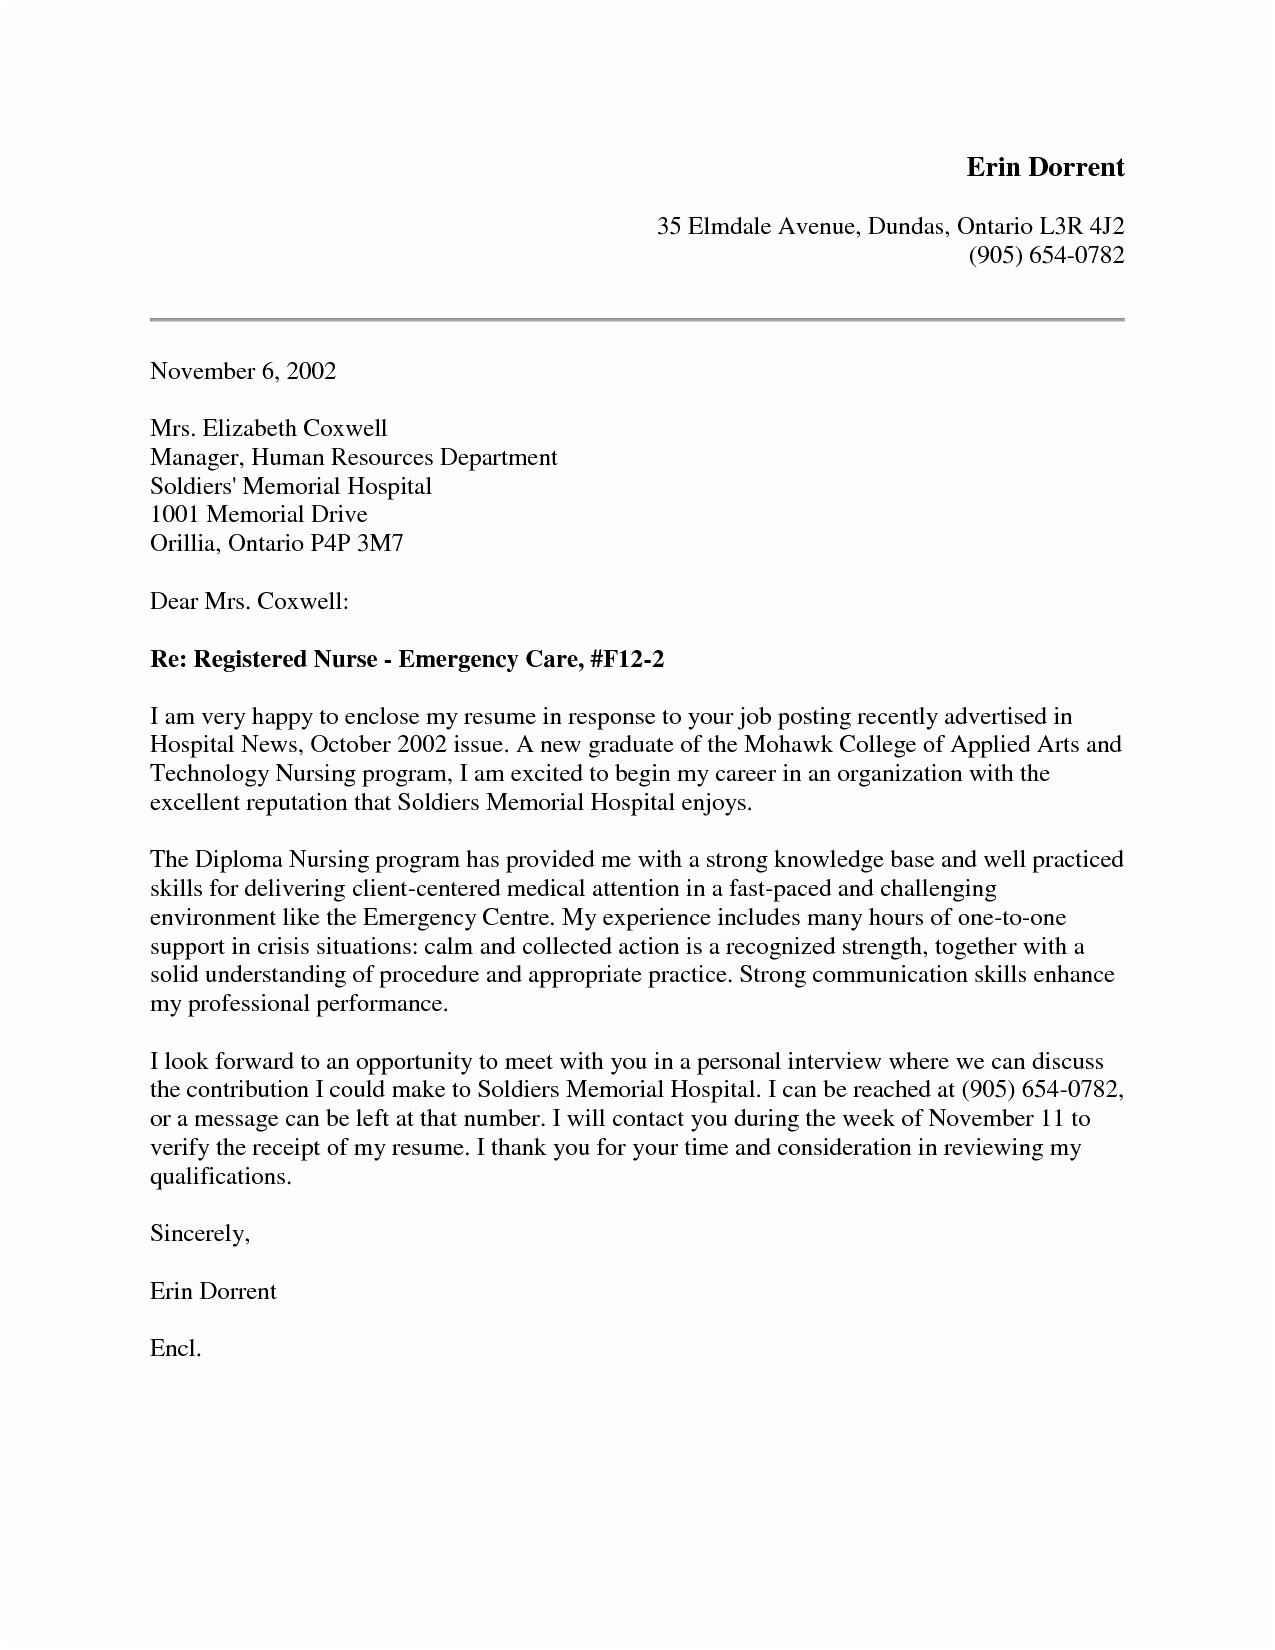 Nursing Cover Letter Template - Cover Letter Examples for Nurses Nursing Cover Letter New Grad